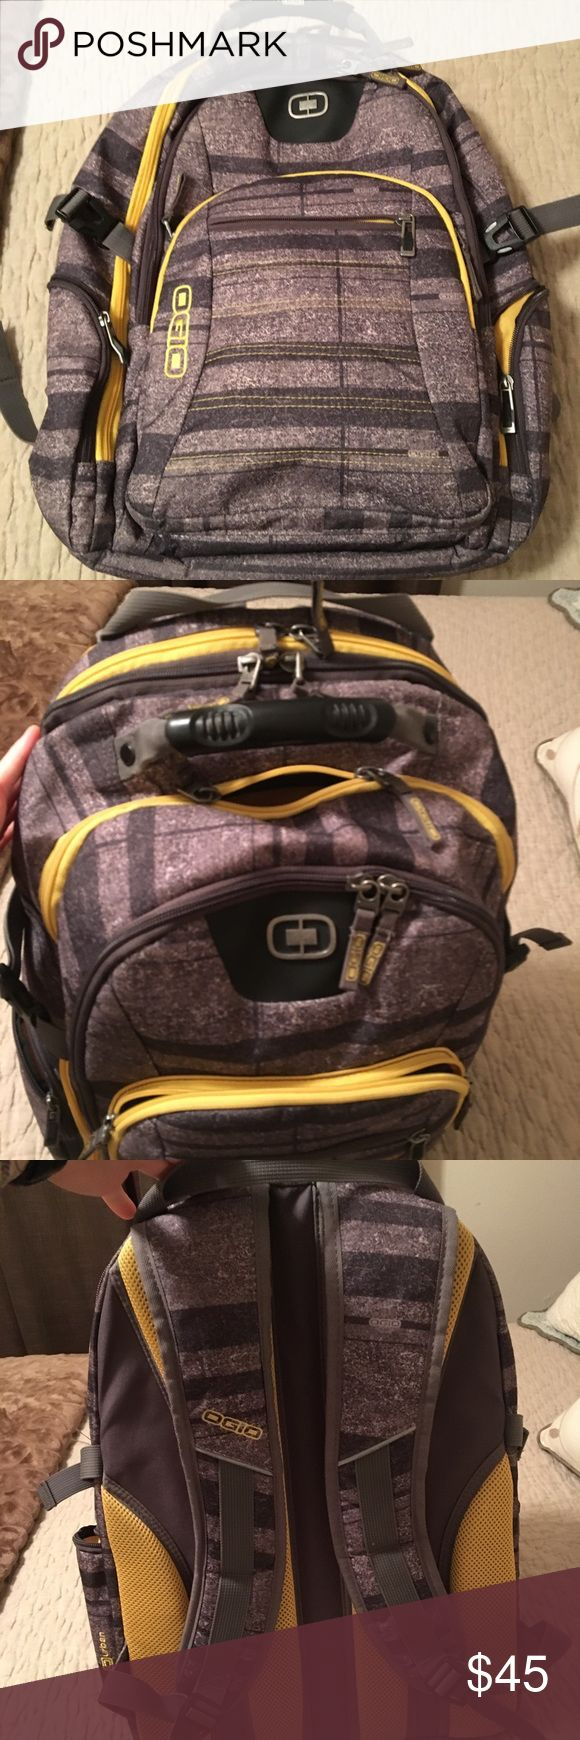 OGIO Travel Tech Backpack Gray and yellow plaid travel tech backpack. 2 large main pockets with 5 additional pockets accessible from outside. Checkpoint friendly zipper allows you to keep the laptop in bag. Extra zippers and storage inside both main pockets. Padding on back area for airflow and protection from heavy bag. Very durable, great condition. OGIO Accessories